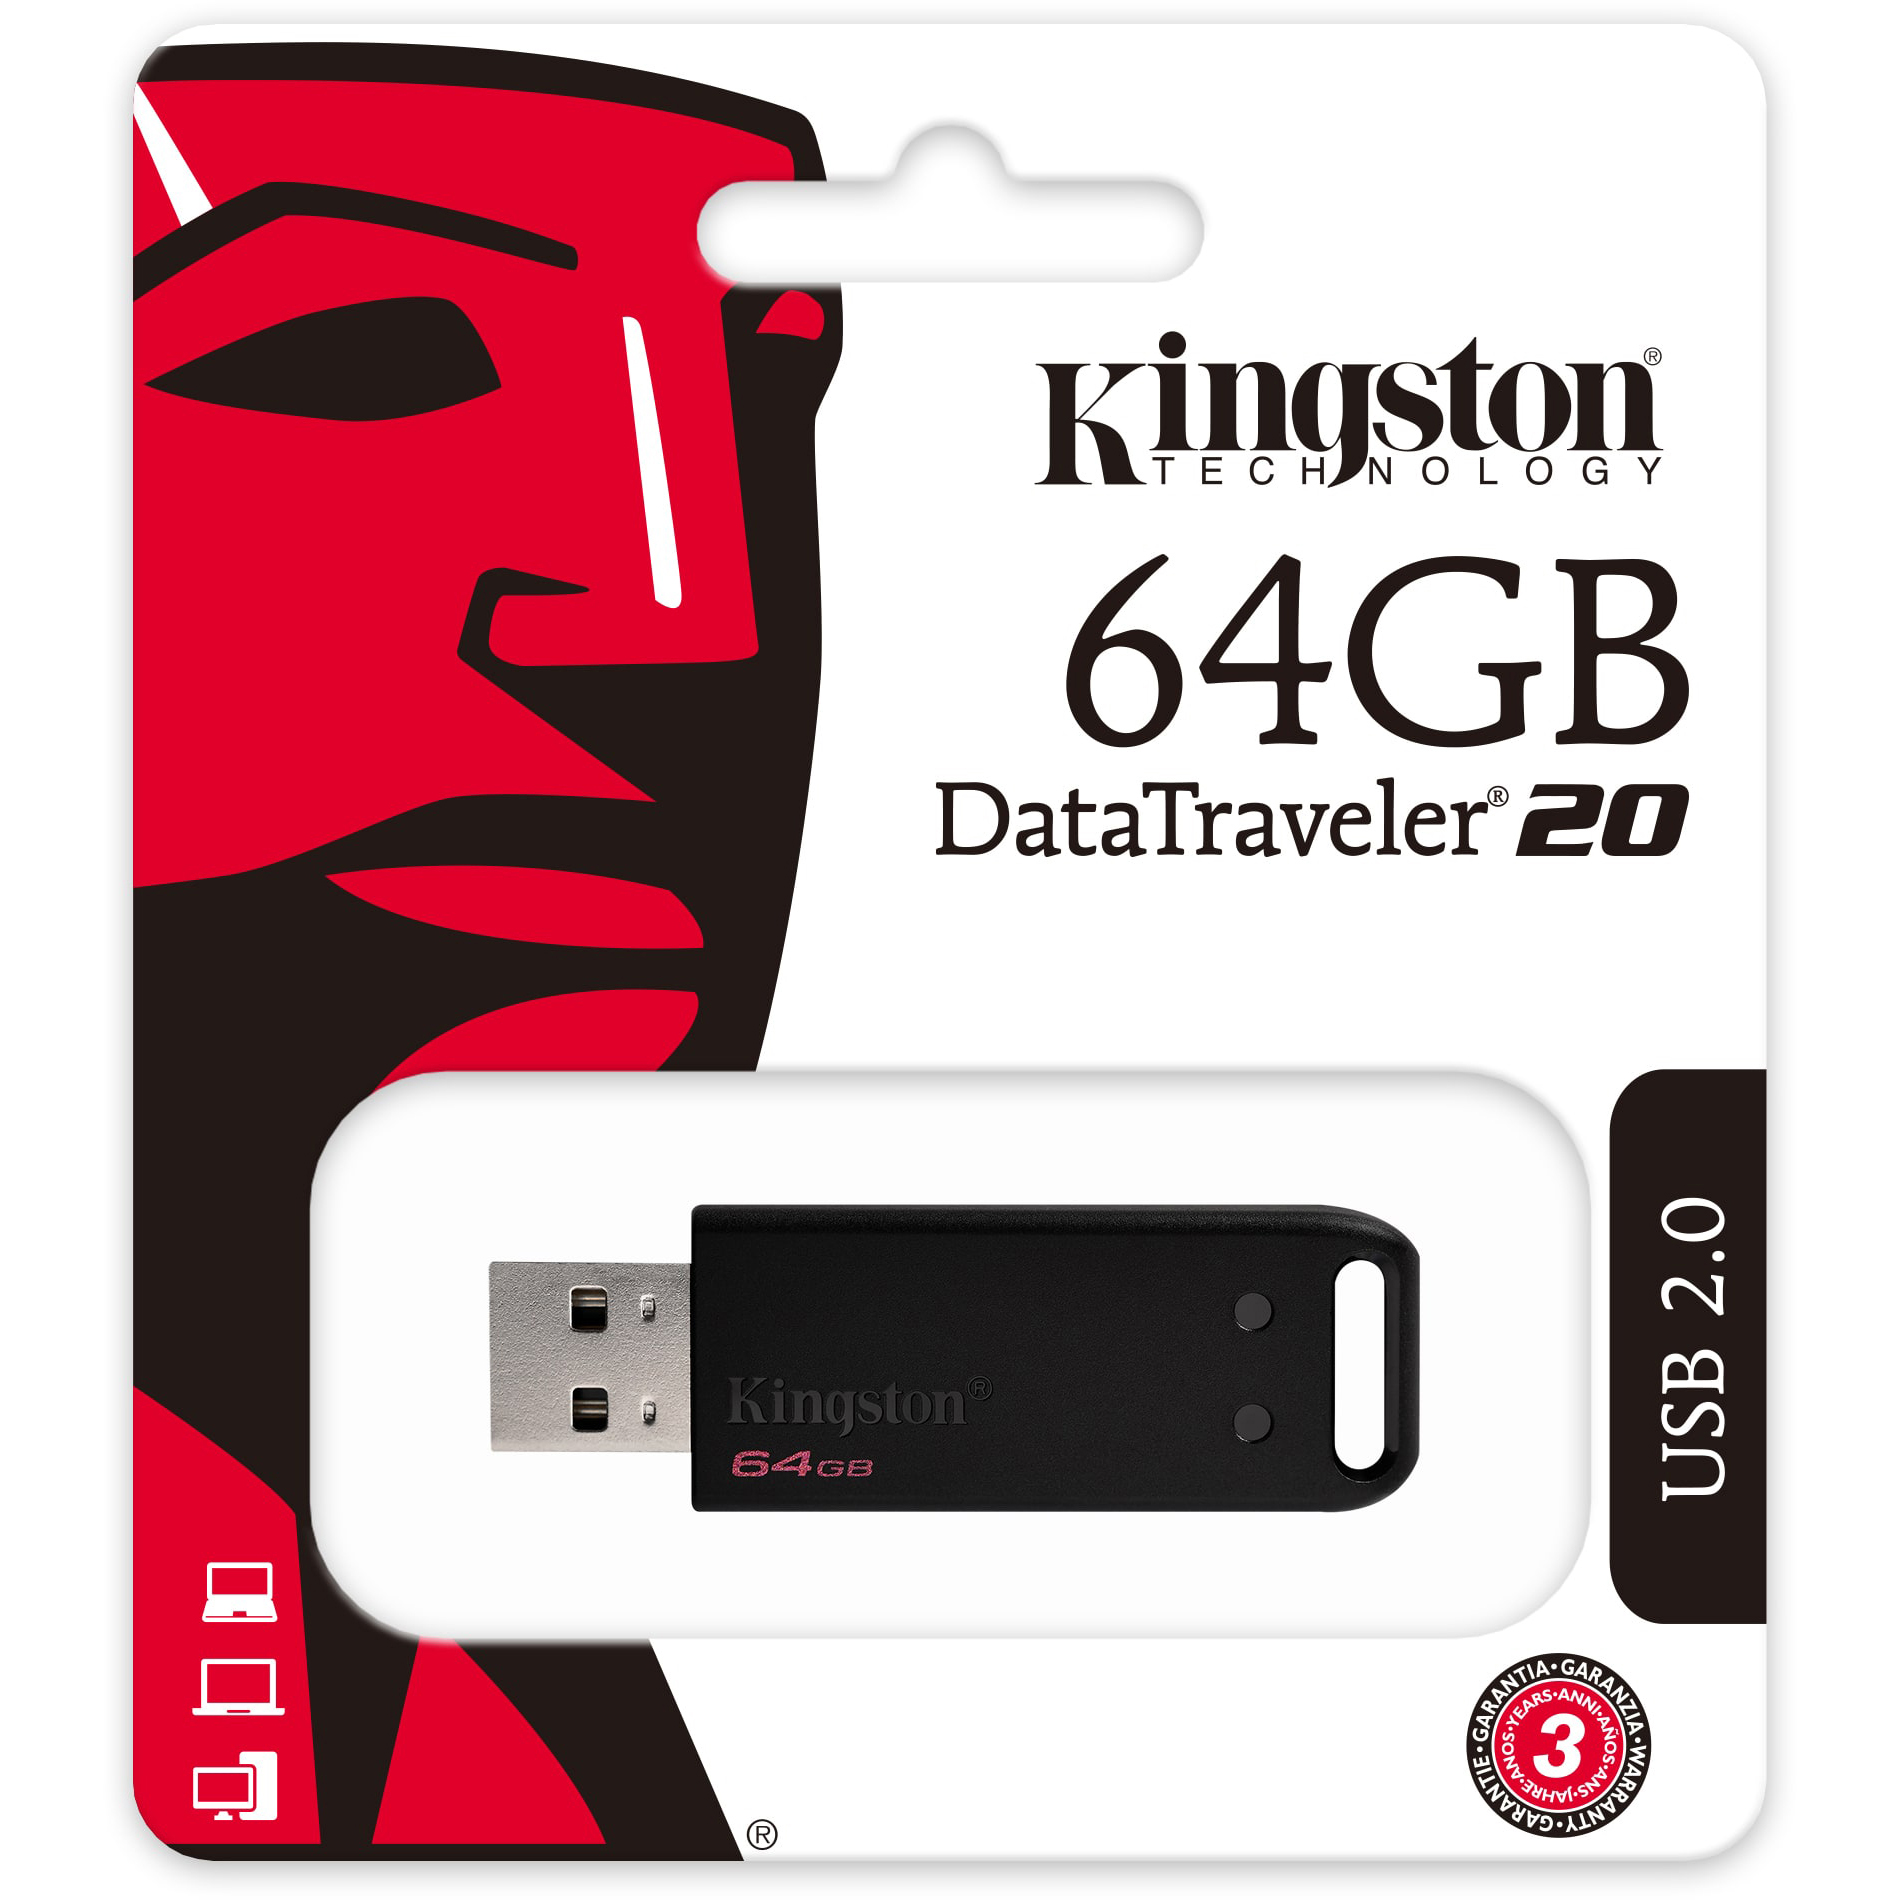 Original Kingston 64GB DataTraveler 20 USB 2.0 Flash Drive (DT20/64GB)